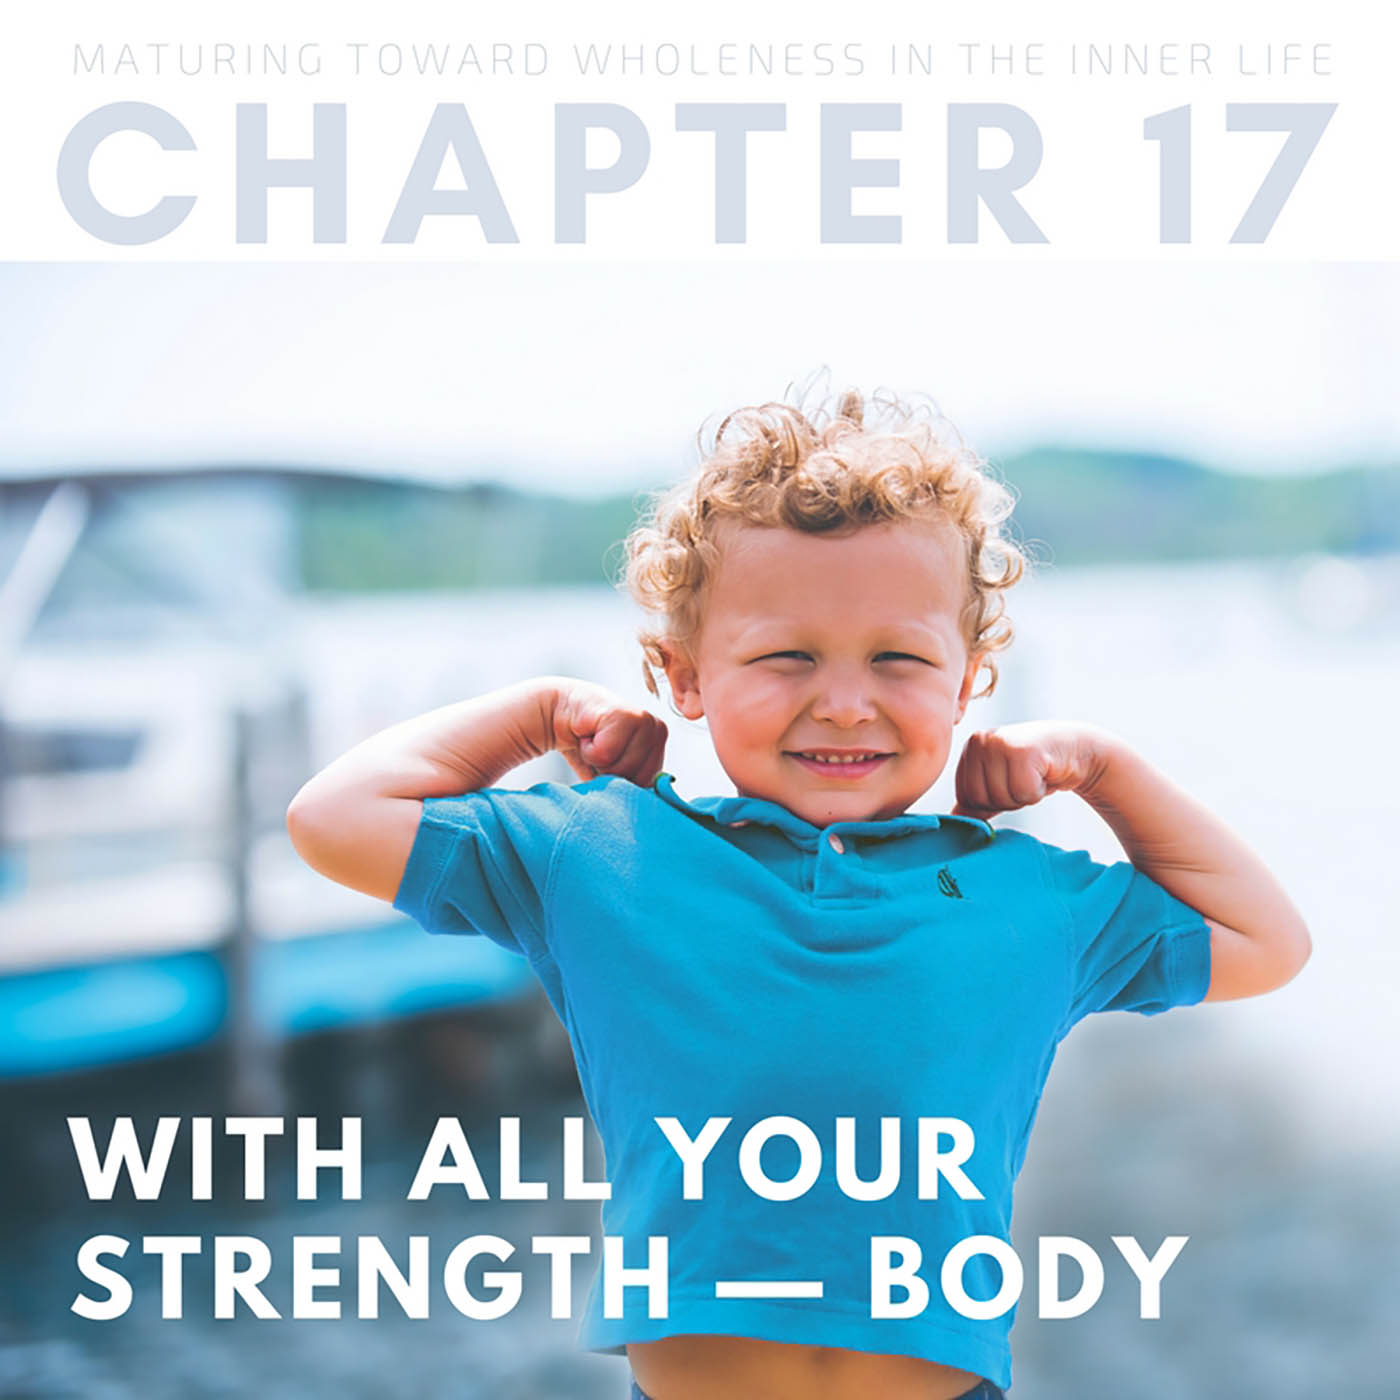 With All Your Strength - Body (1 of 2)